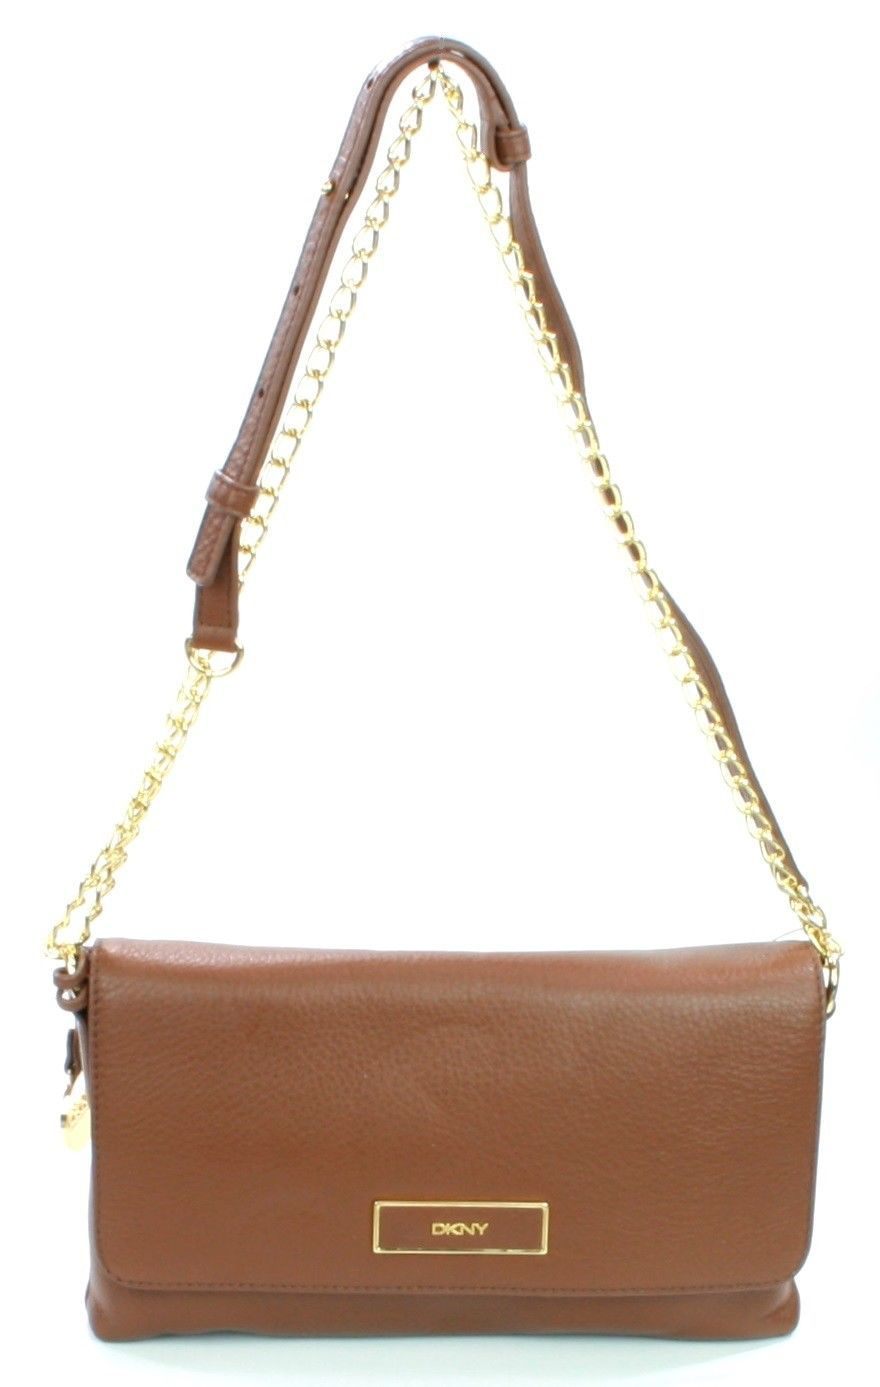 DKNY Donna Karan Brown Leather Shoulder Bag Handbag Small